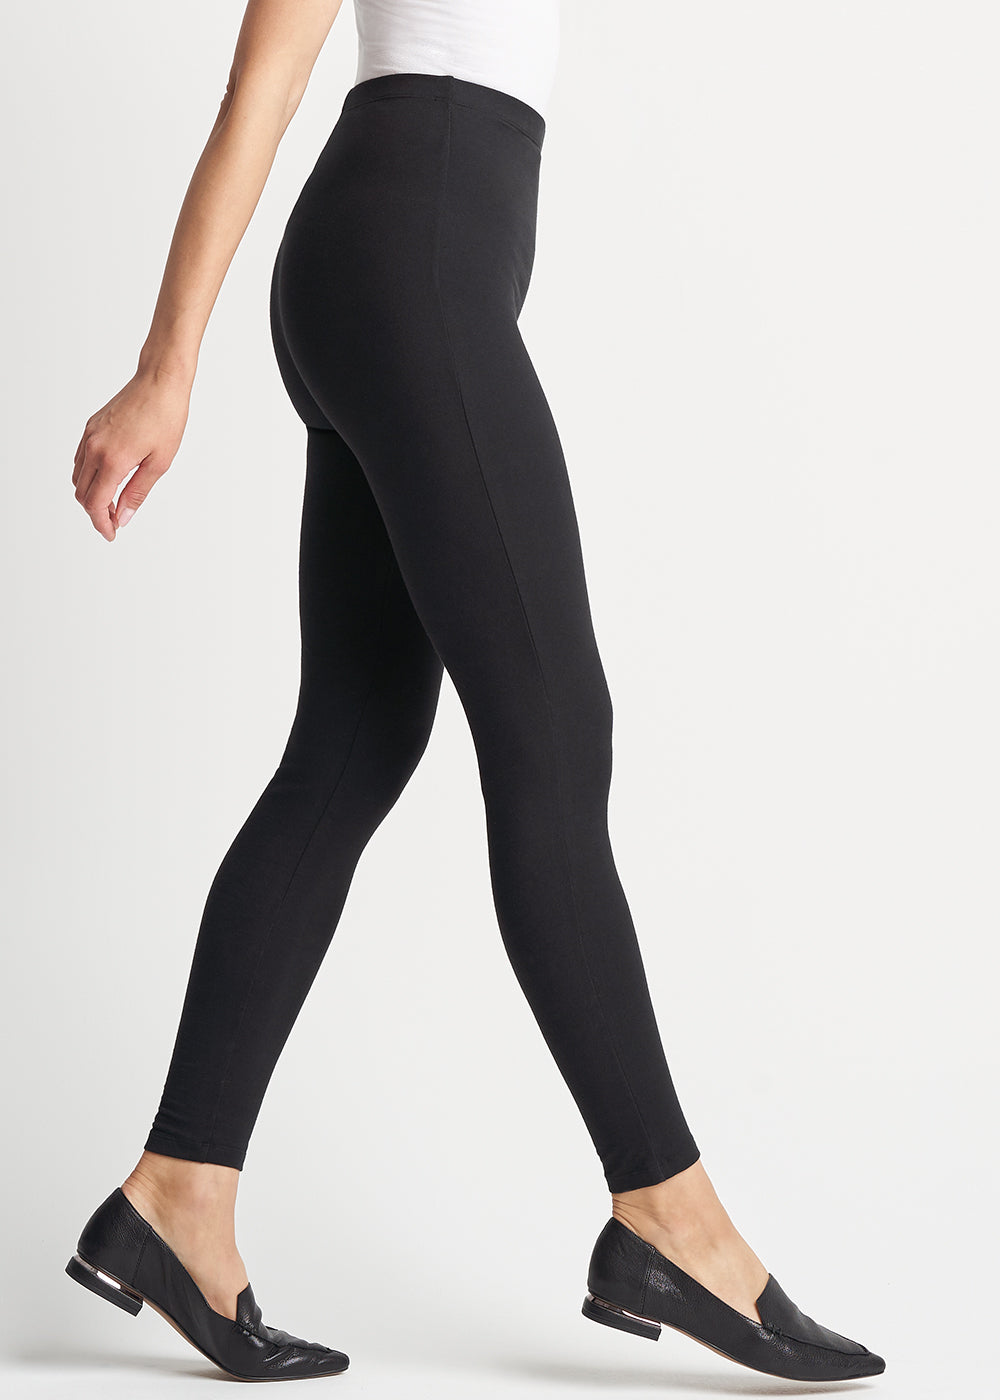 3-in-1 Shaping Legging